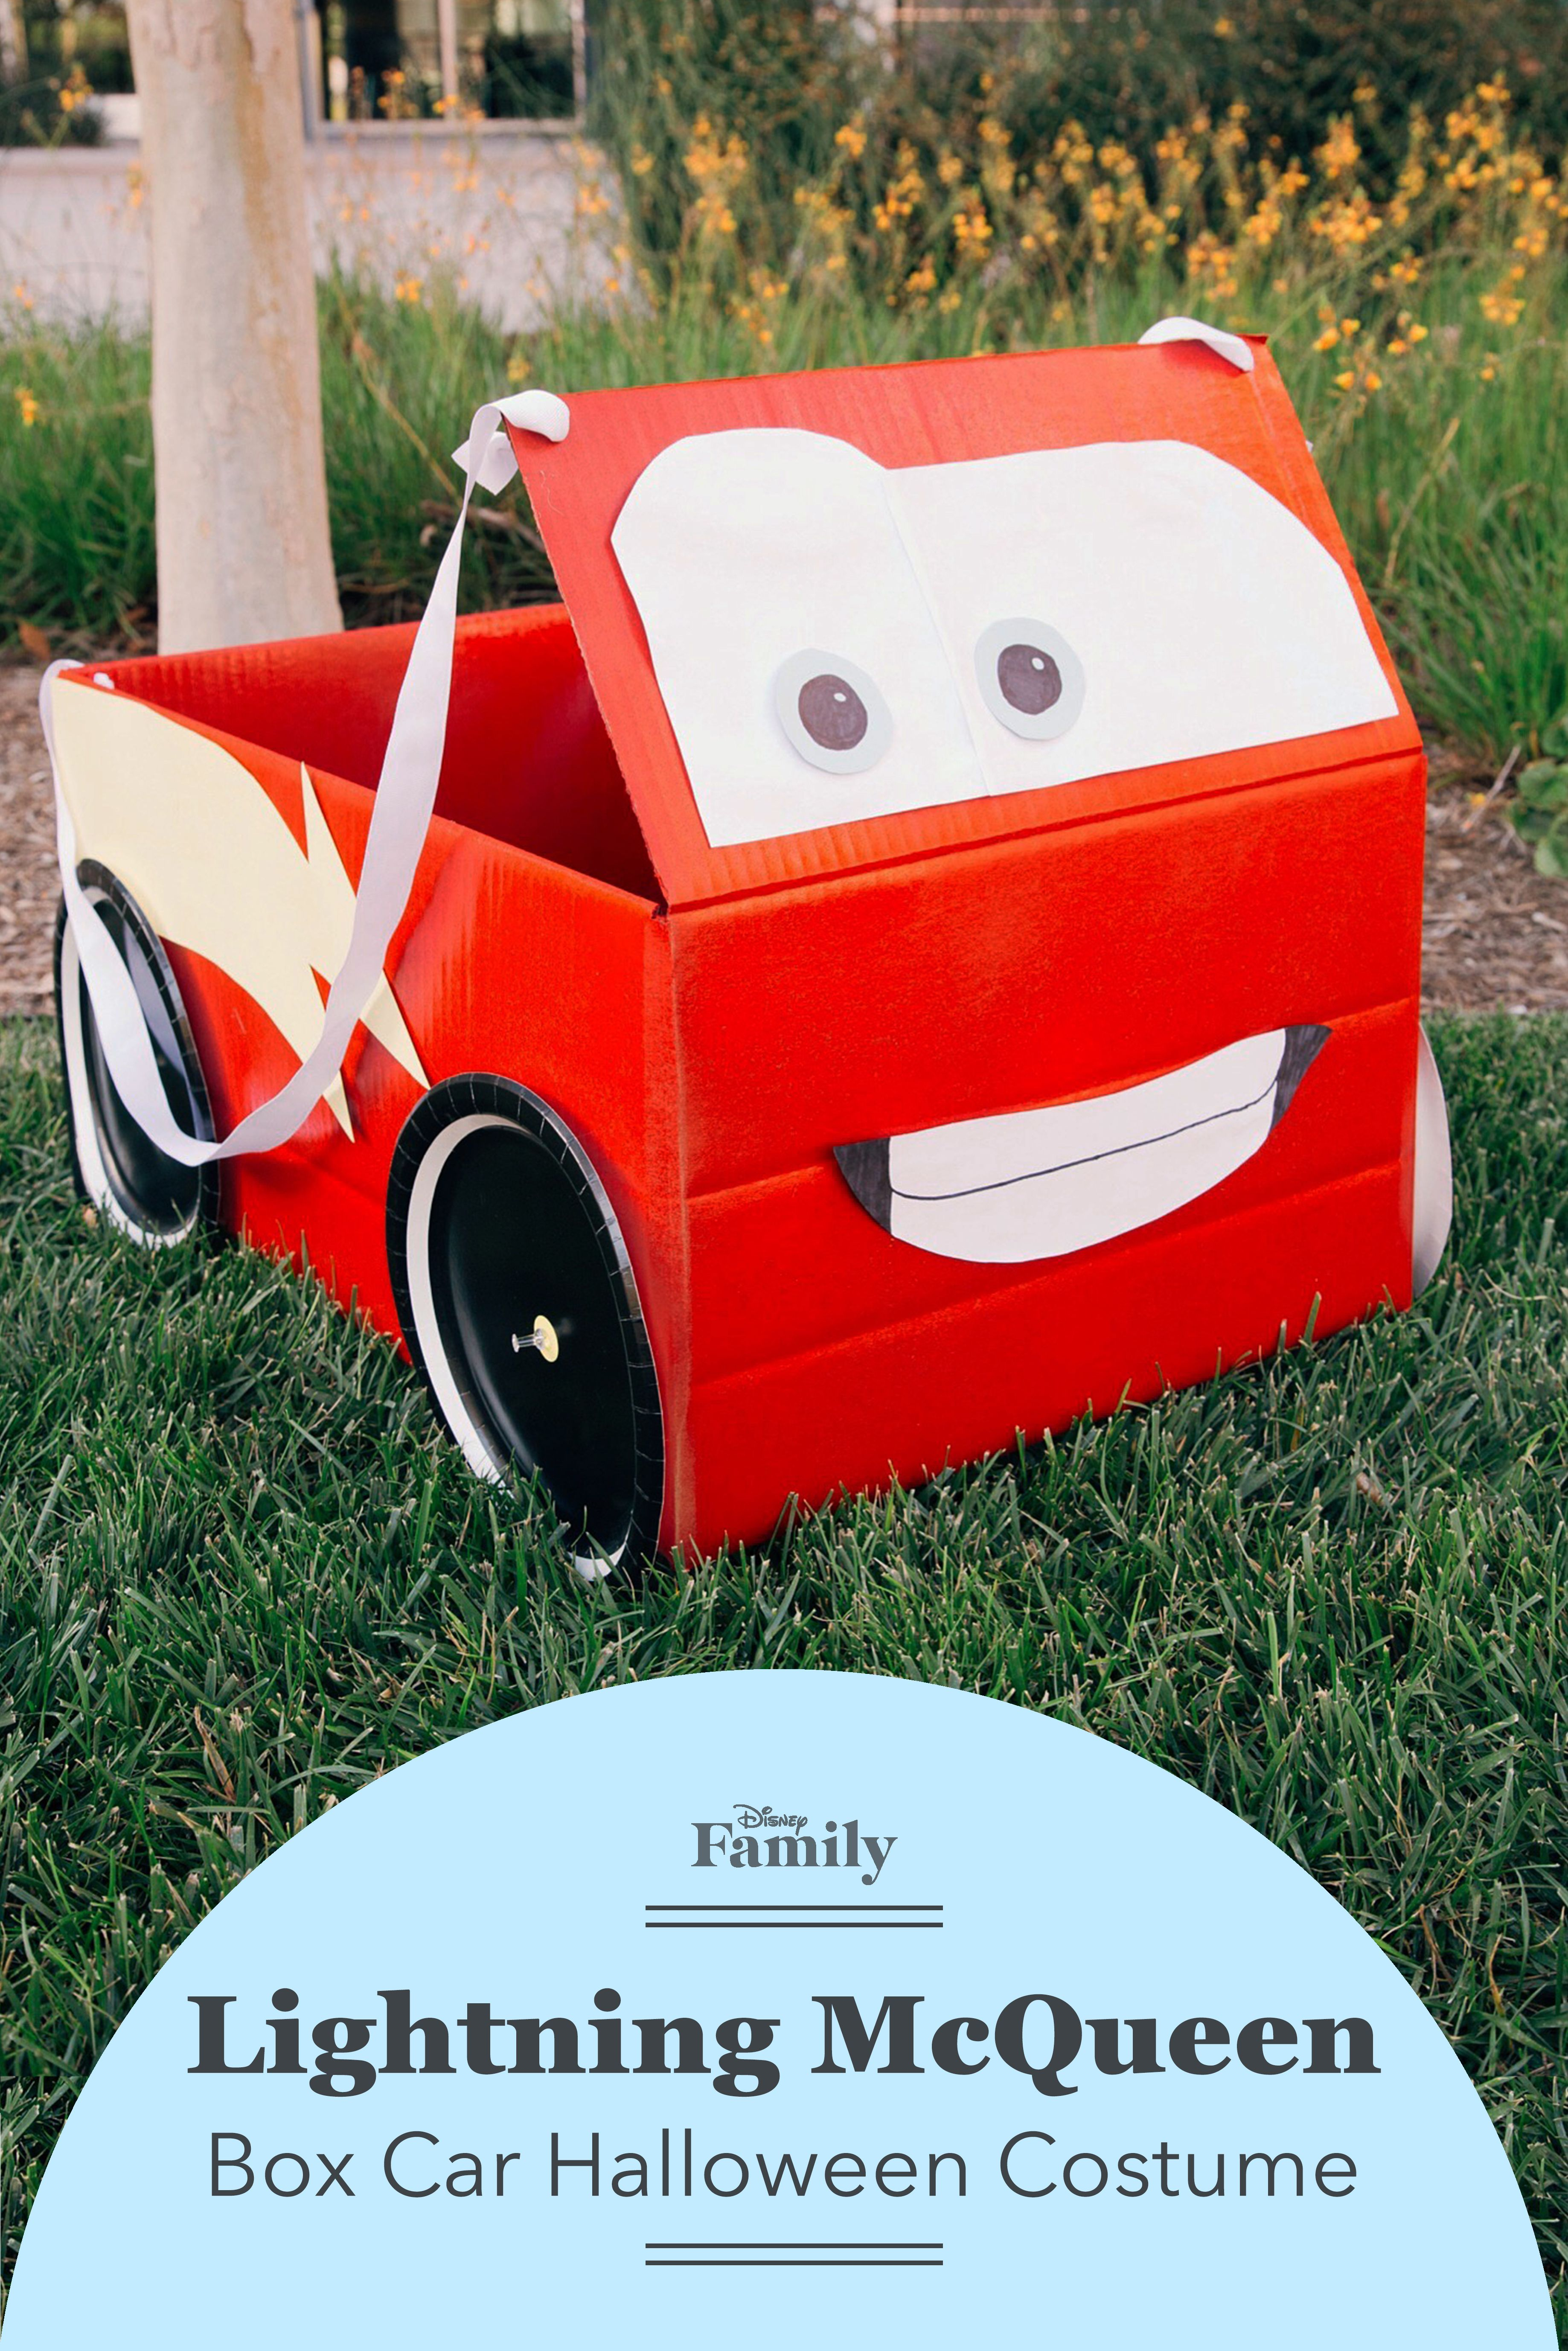 All you need for this adorable DIY Lightning McQueen Halloween Costume is a box, some craft supplies, and a trusty pit crew (AKA helpful parents). Dressed as Lightning, you'll be the hit of the Halloween party! Ka-chow!